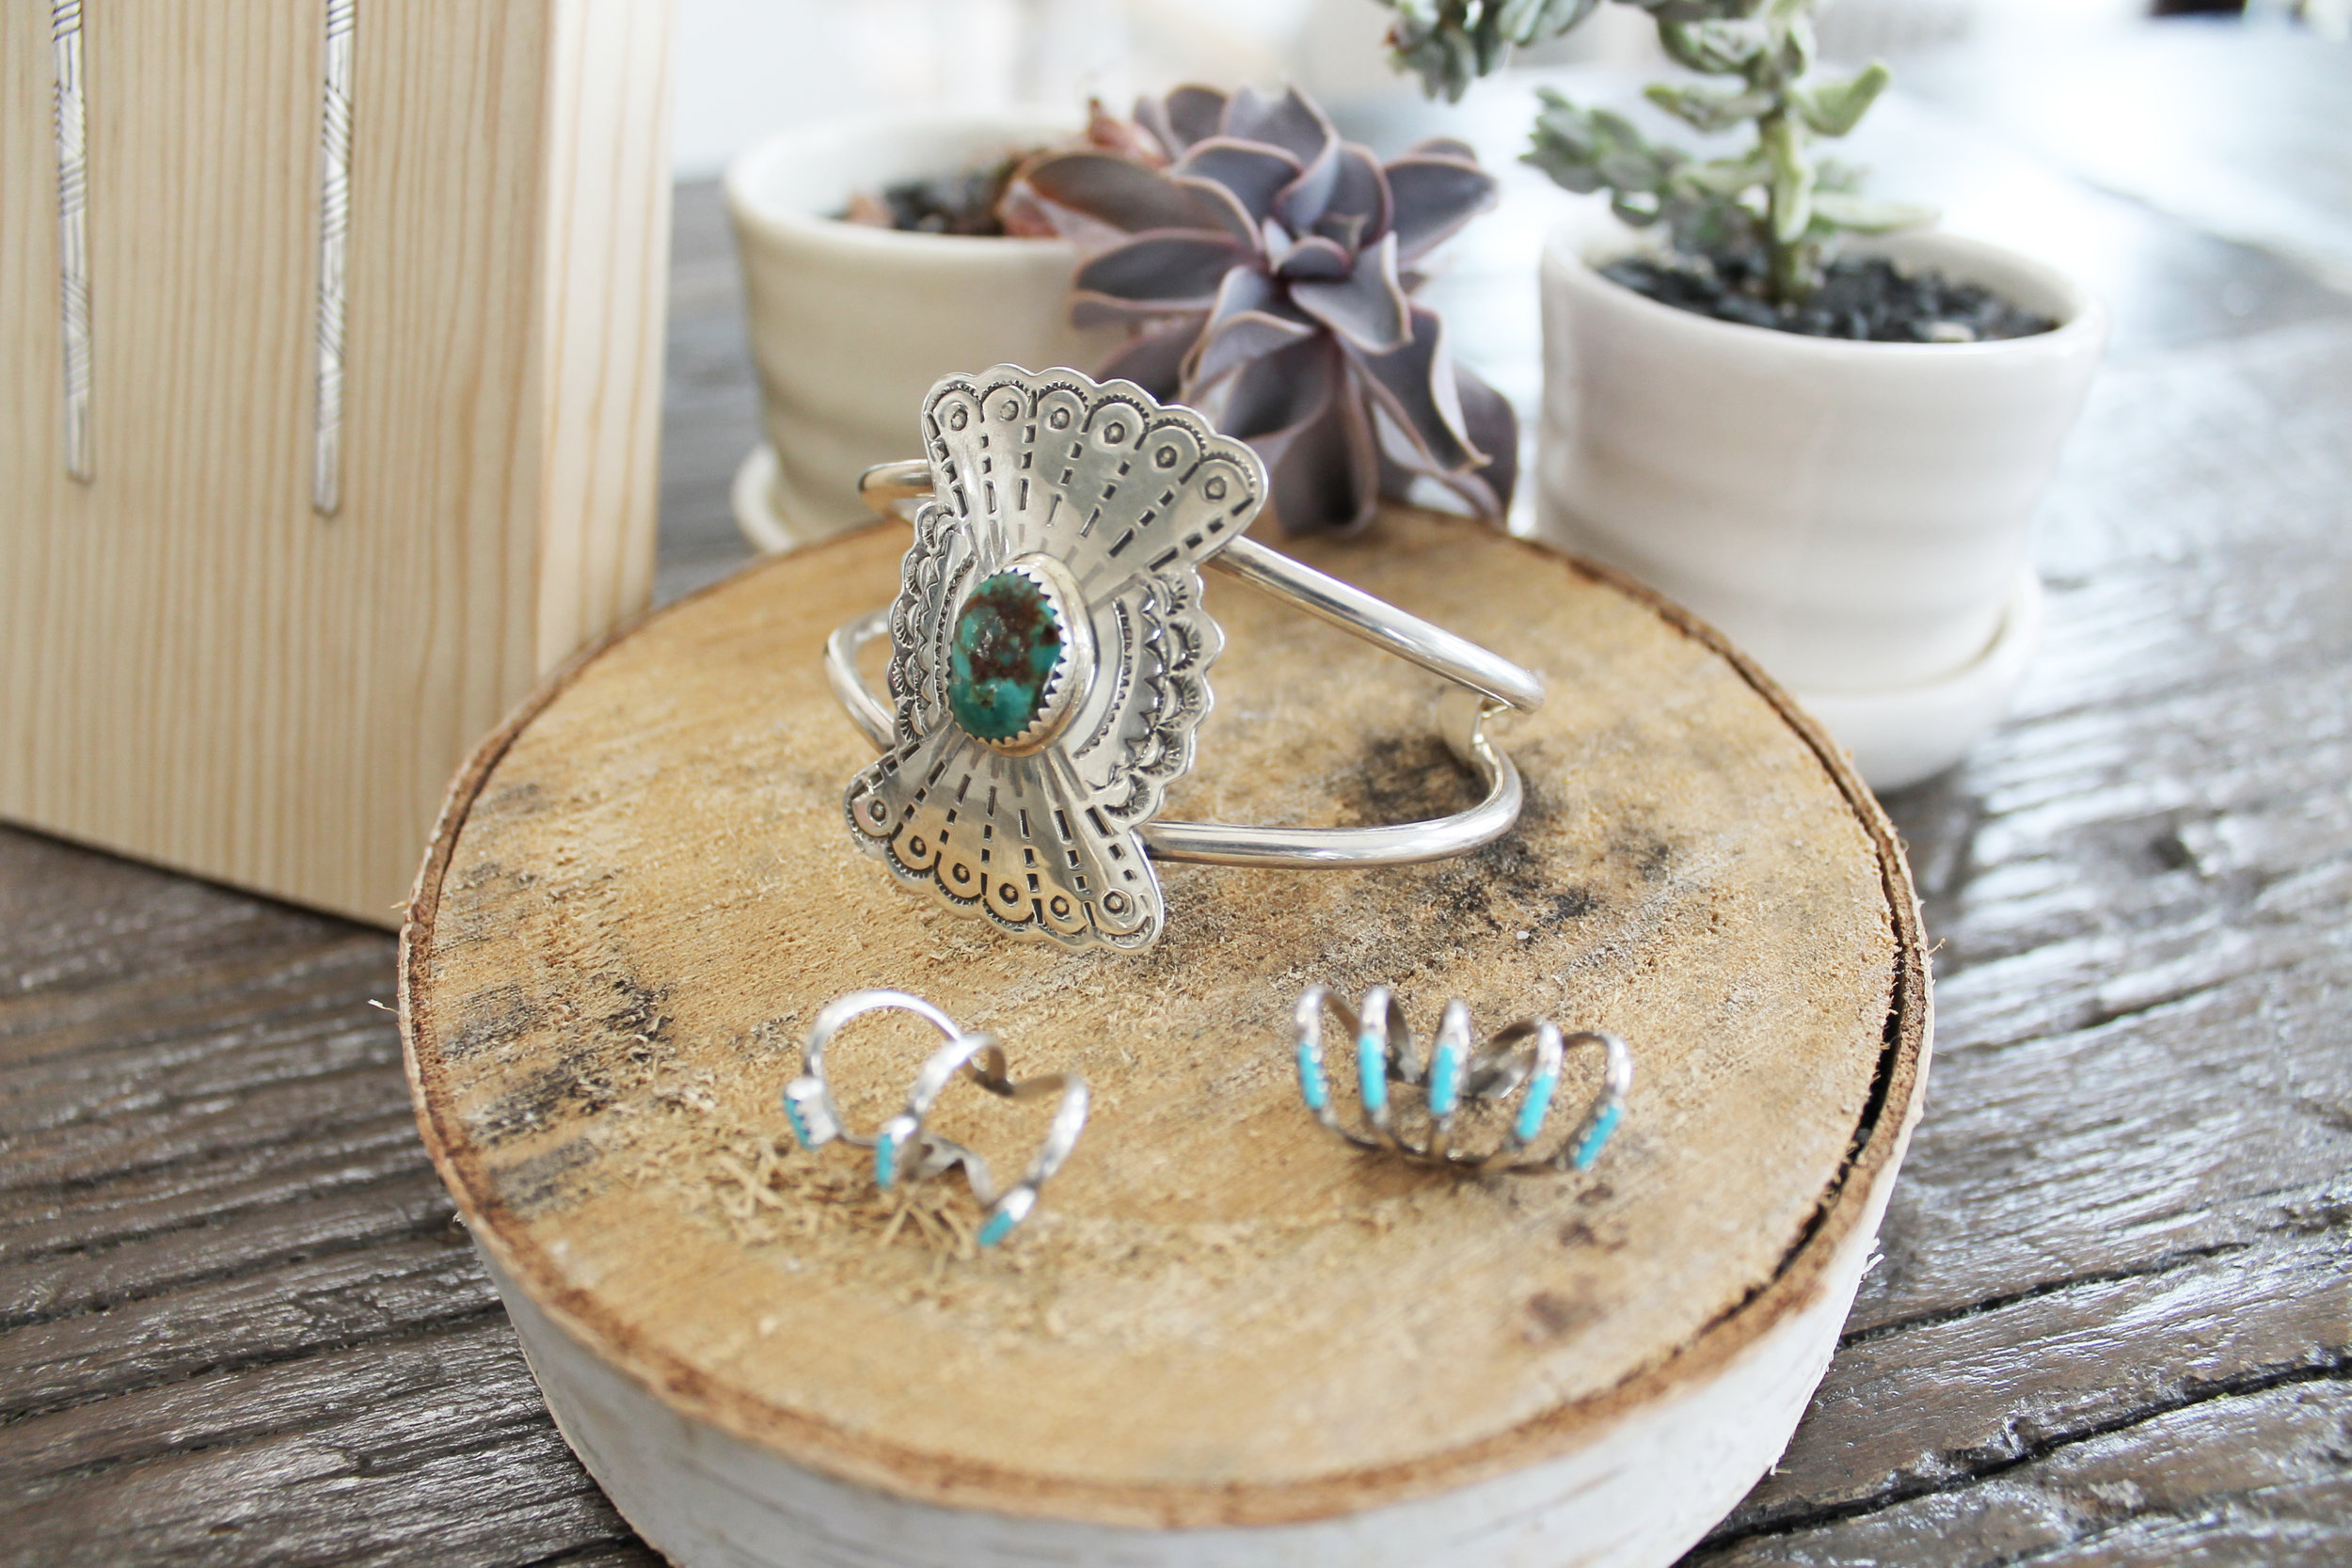 Pictured: Bow & Arrow Concho Cuff, Sleeping Beauty Ear Cuff,and Sterling Triangle Wire Earrings in Geo